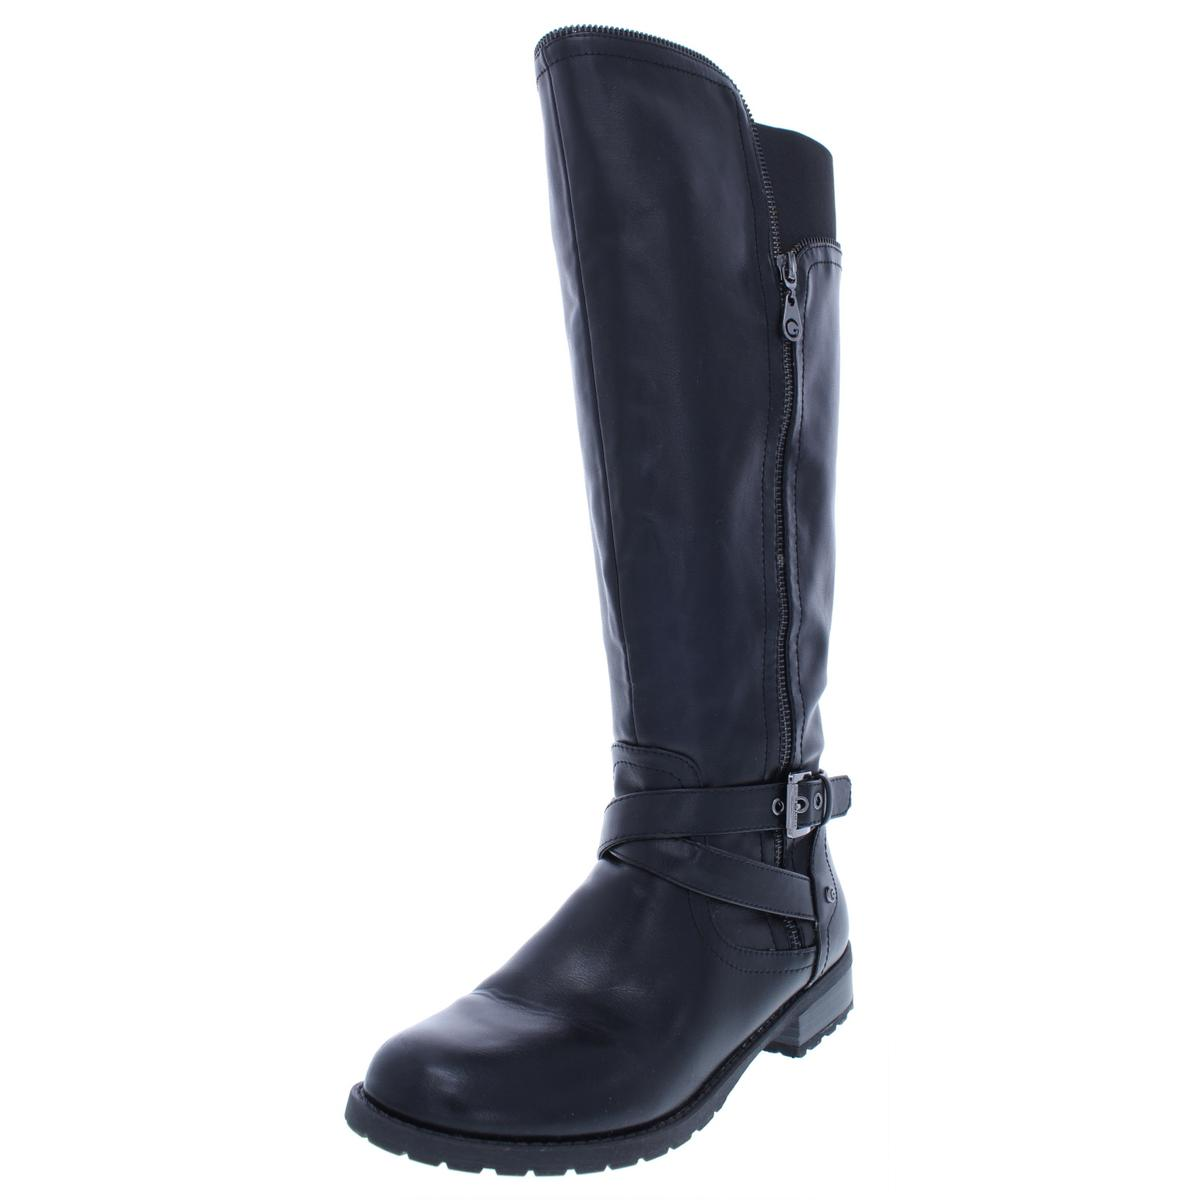 G By Guess Womens Halsey Black Riding Boots Shoes 95 Medium Bm